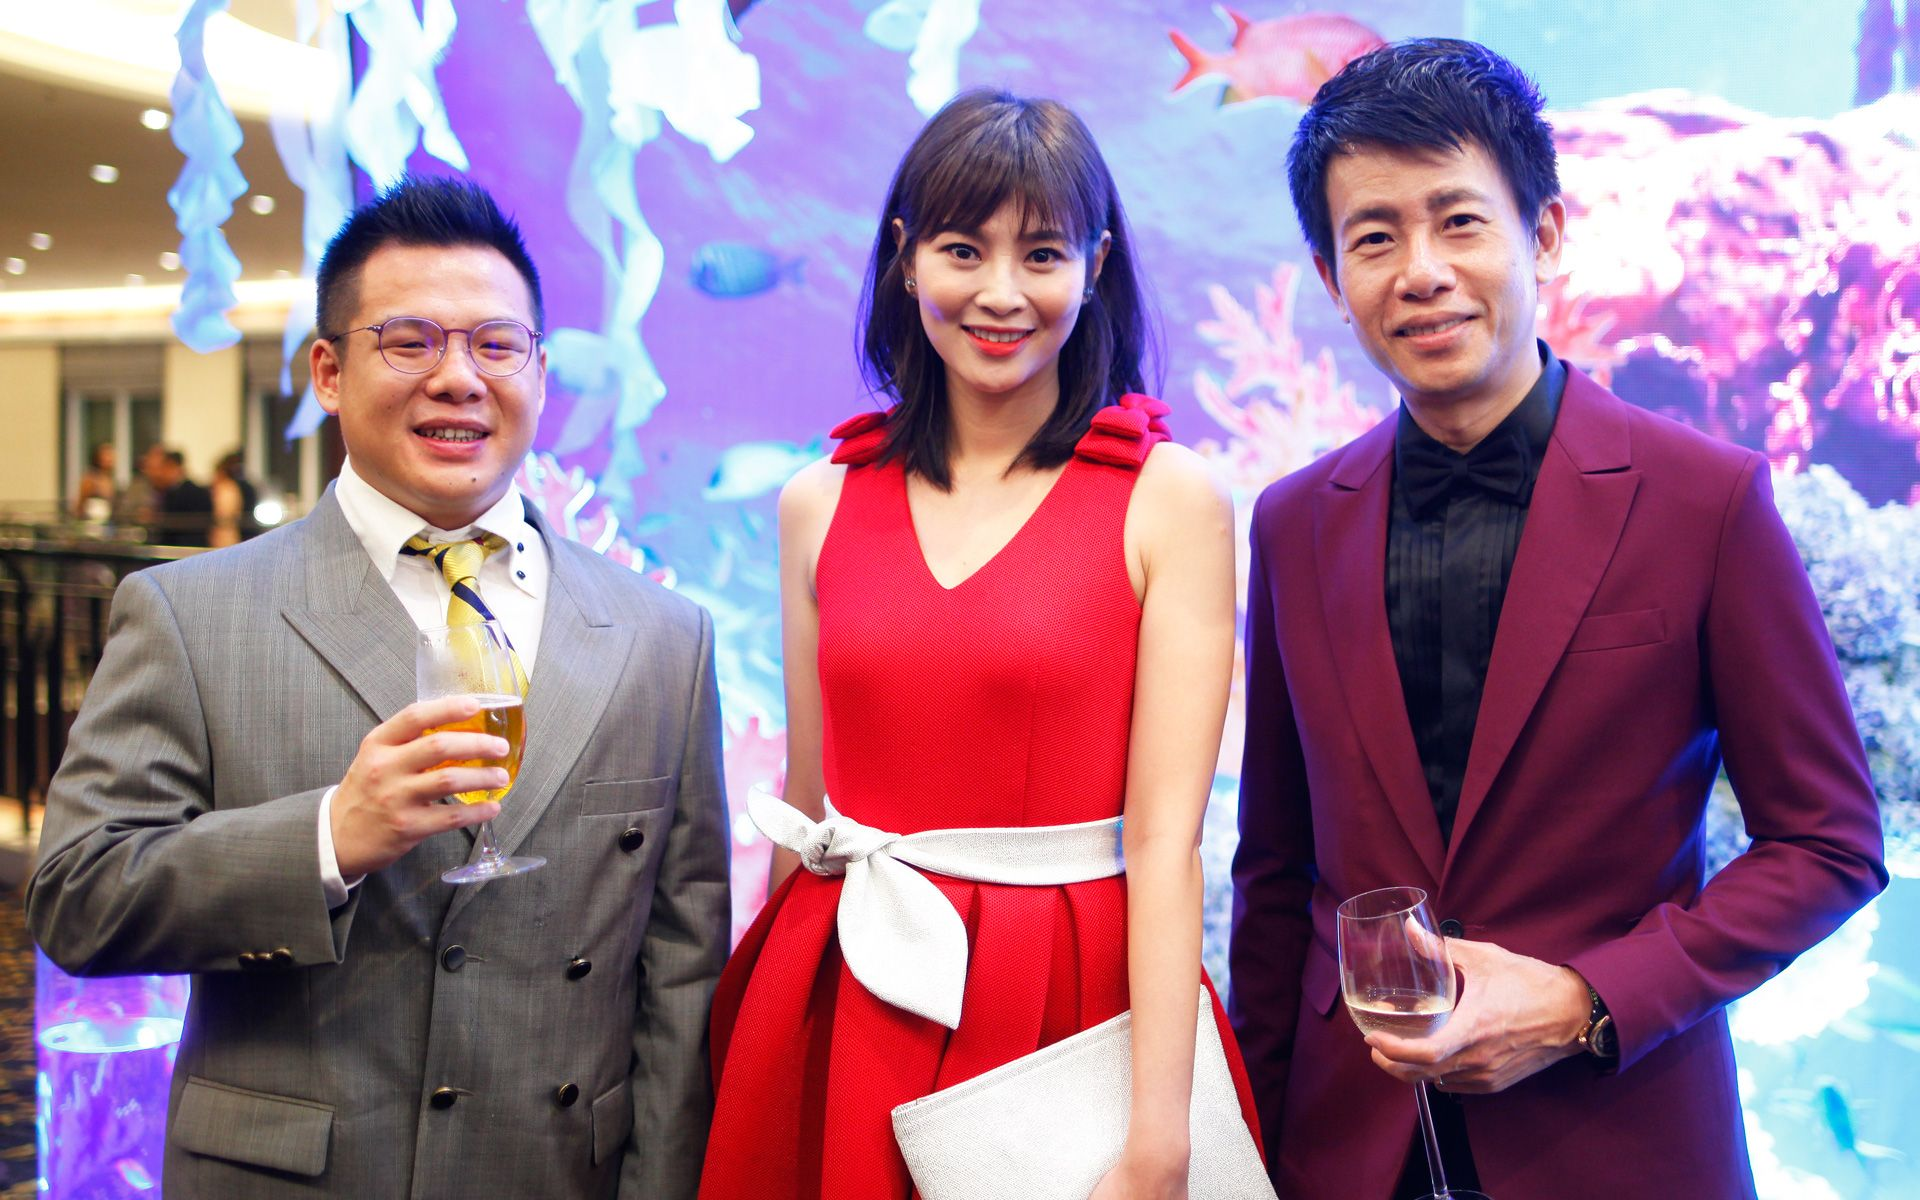 Chow Zi Chong, Jan Chin and Key Ng